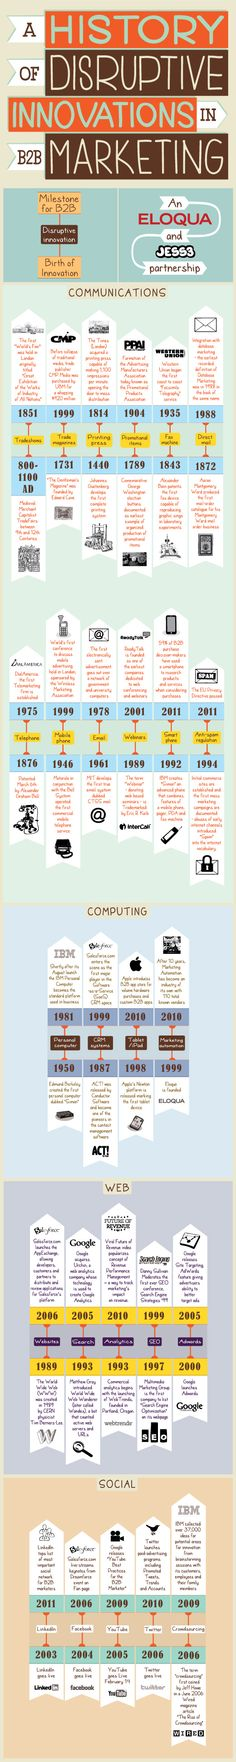 This infographic, created by Eloqua and visualizes a timeline of disruptions in the history of marketing. It explores the birth of innovation from Guerilla Marketing, Marketing Digital, Business Marketing, Internet Marketing, Inbound Marketing, Online Marketing, Social Media Marketing, Social Business, Content Marketing